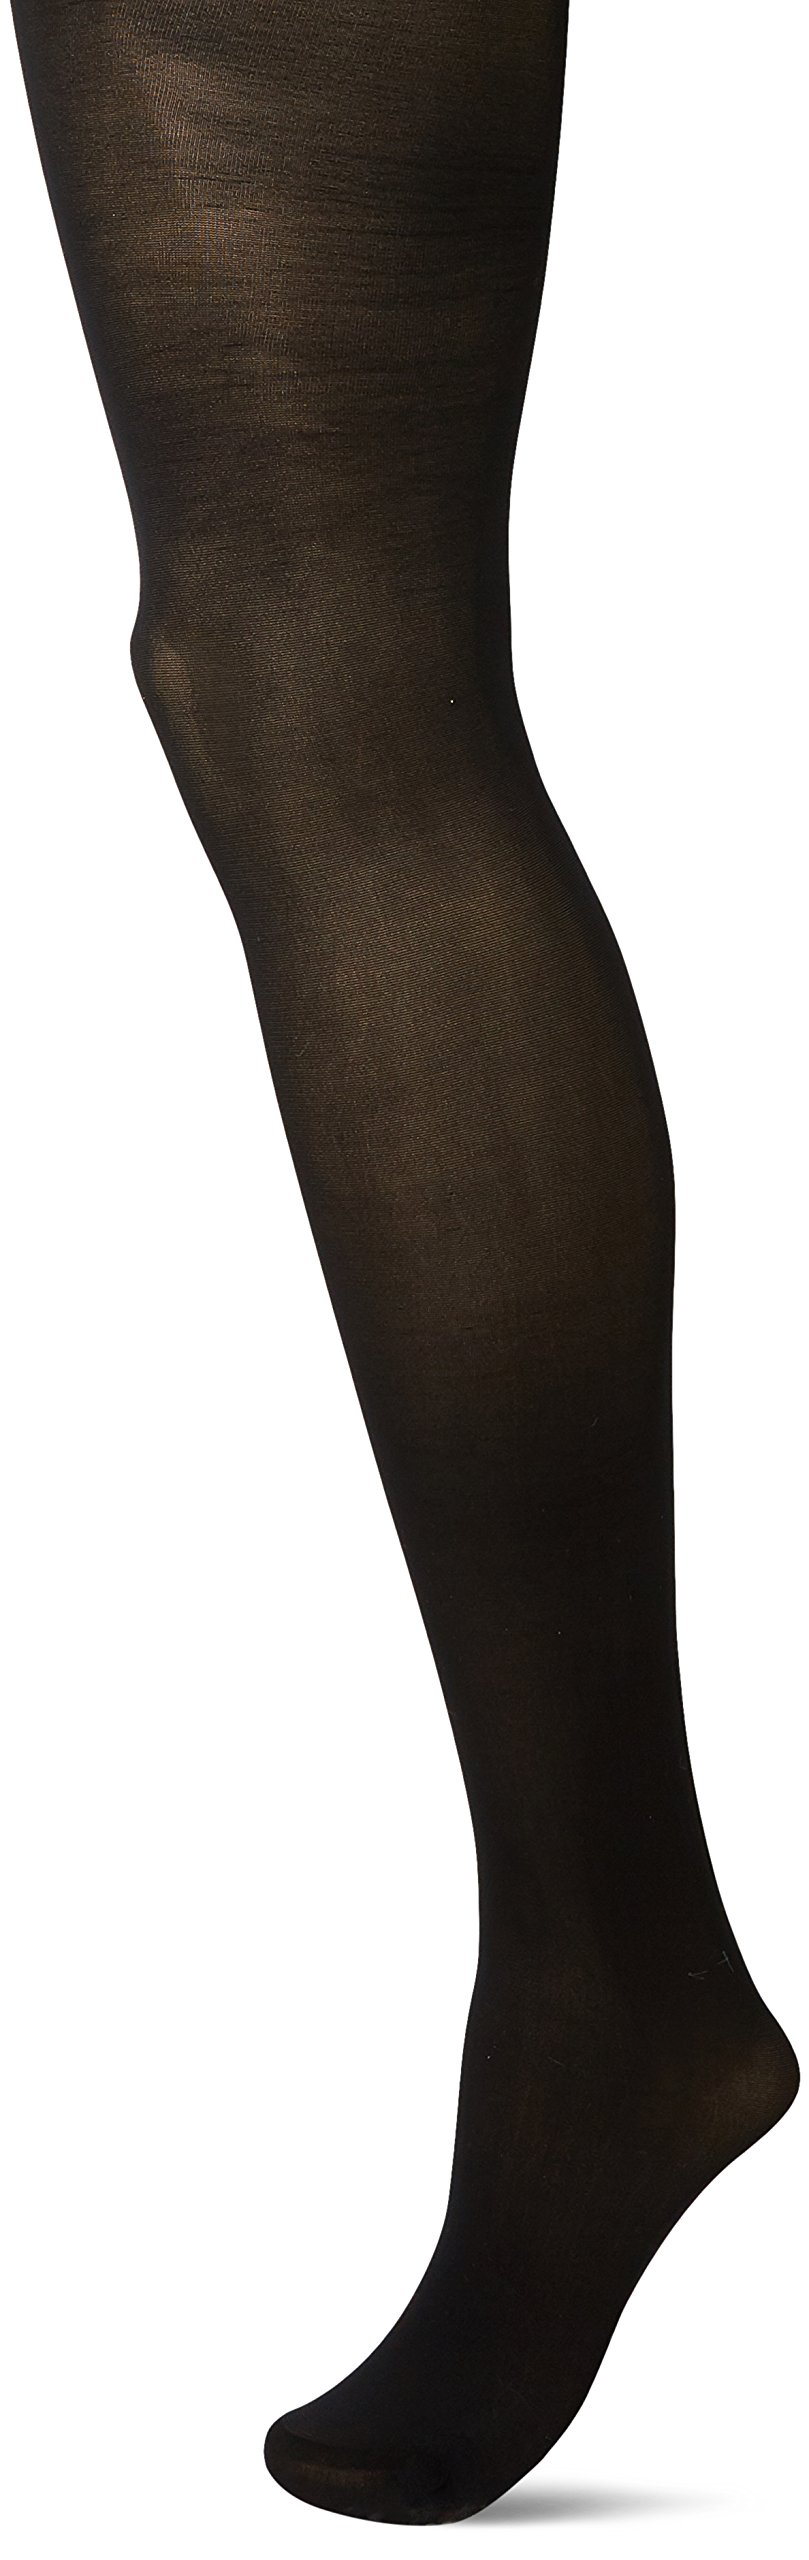 Opaque 8 Taille38 Fabricant2 Femme DimBody Collants Noir Touch 40taille De Lot 08XPOknw